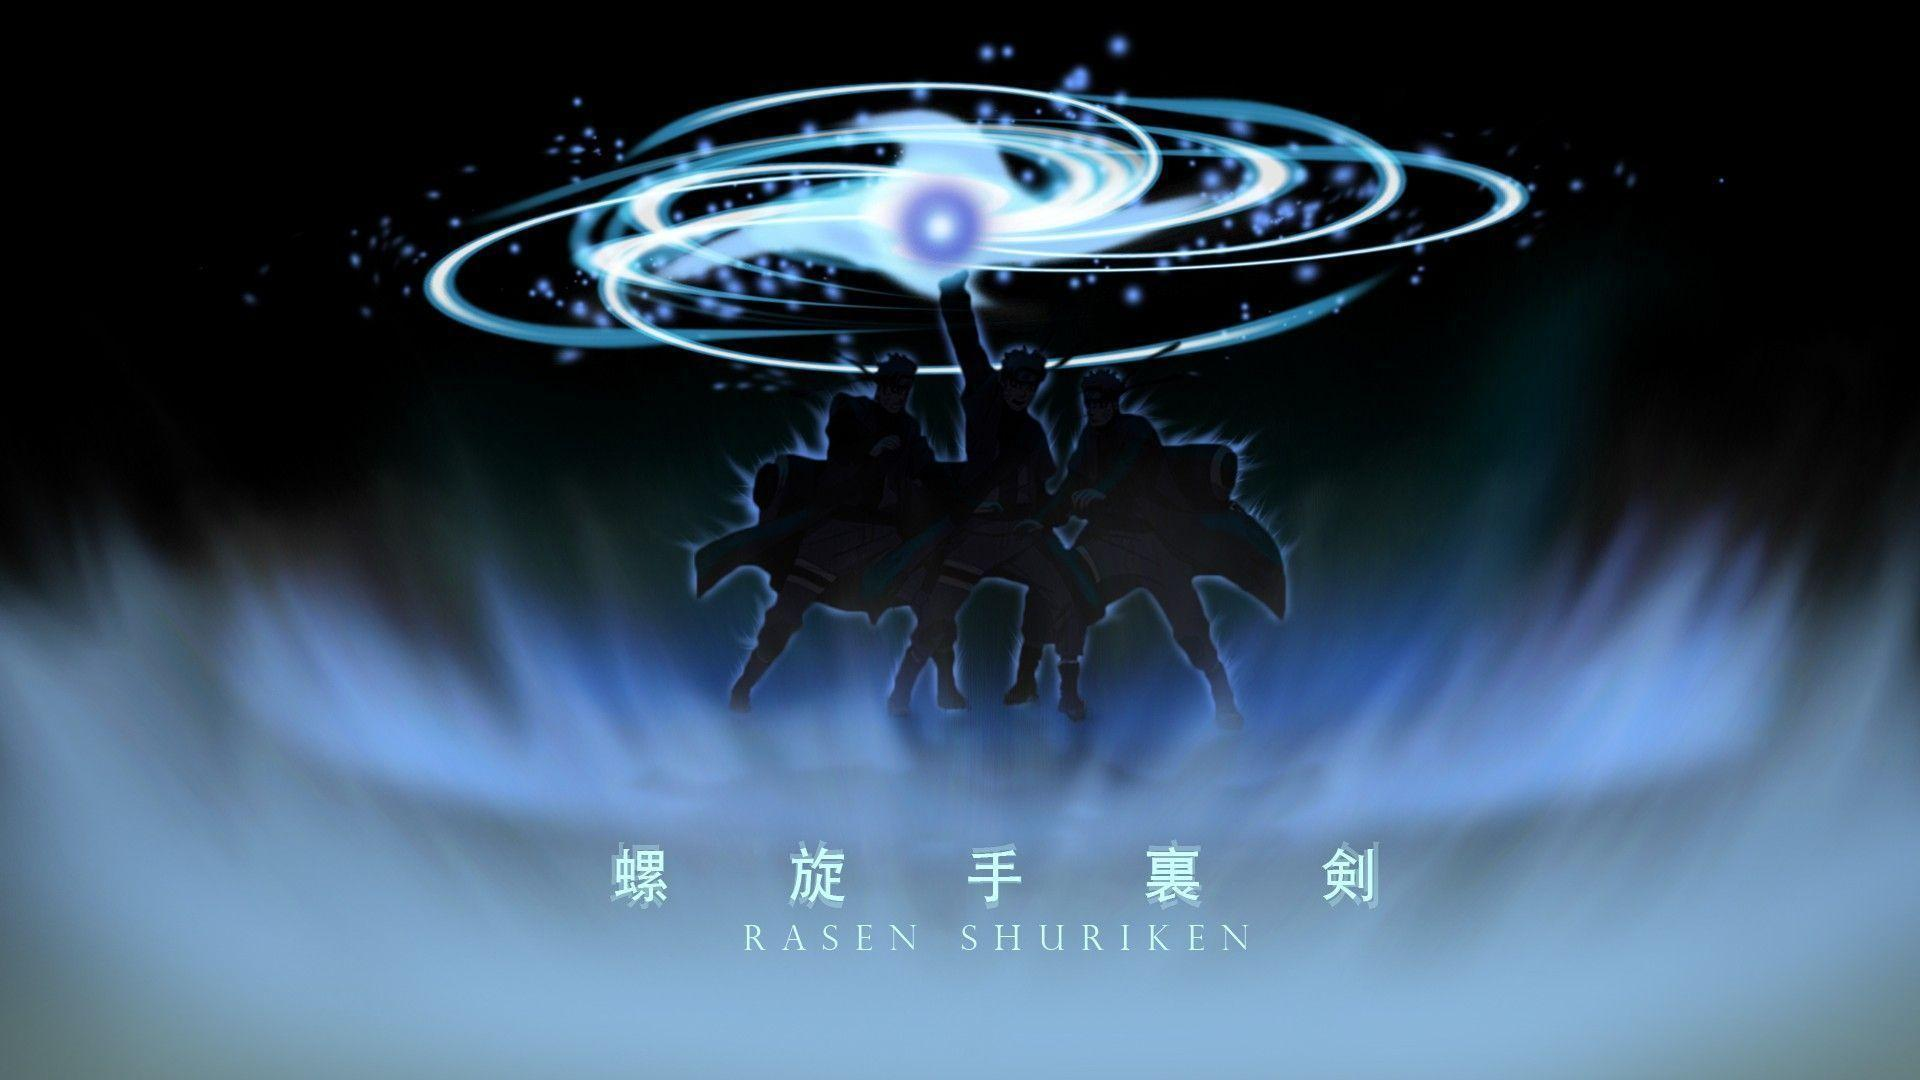 Naruto Rasengan Wallpapers 1920x1080